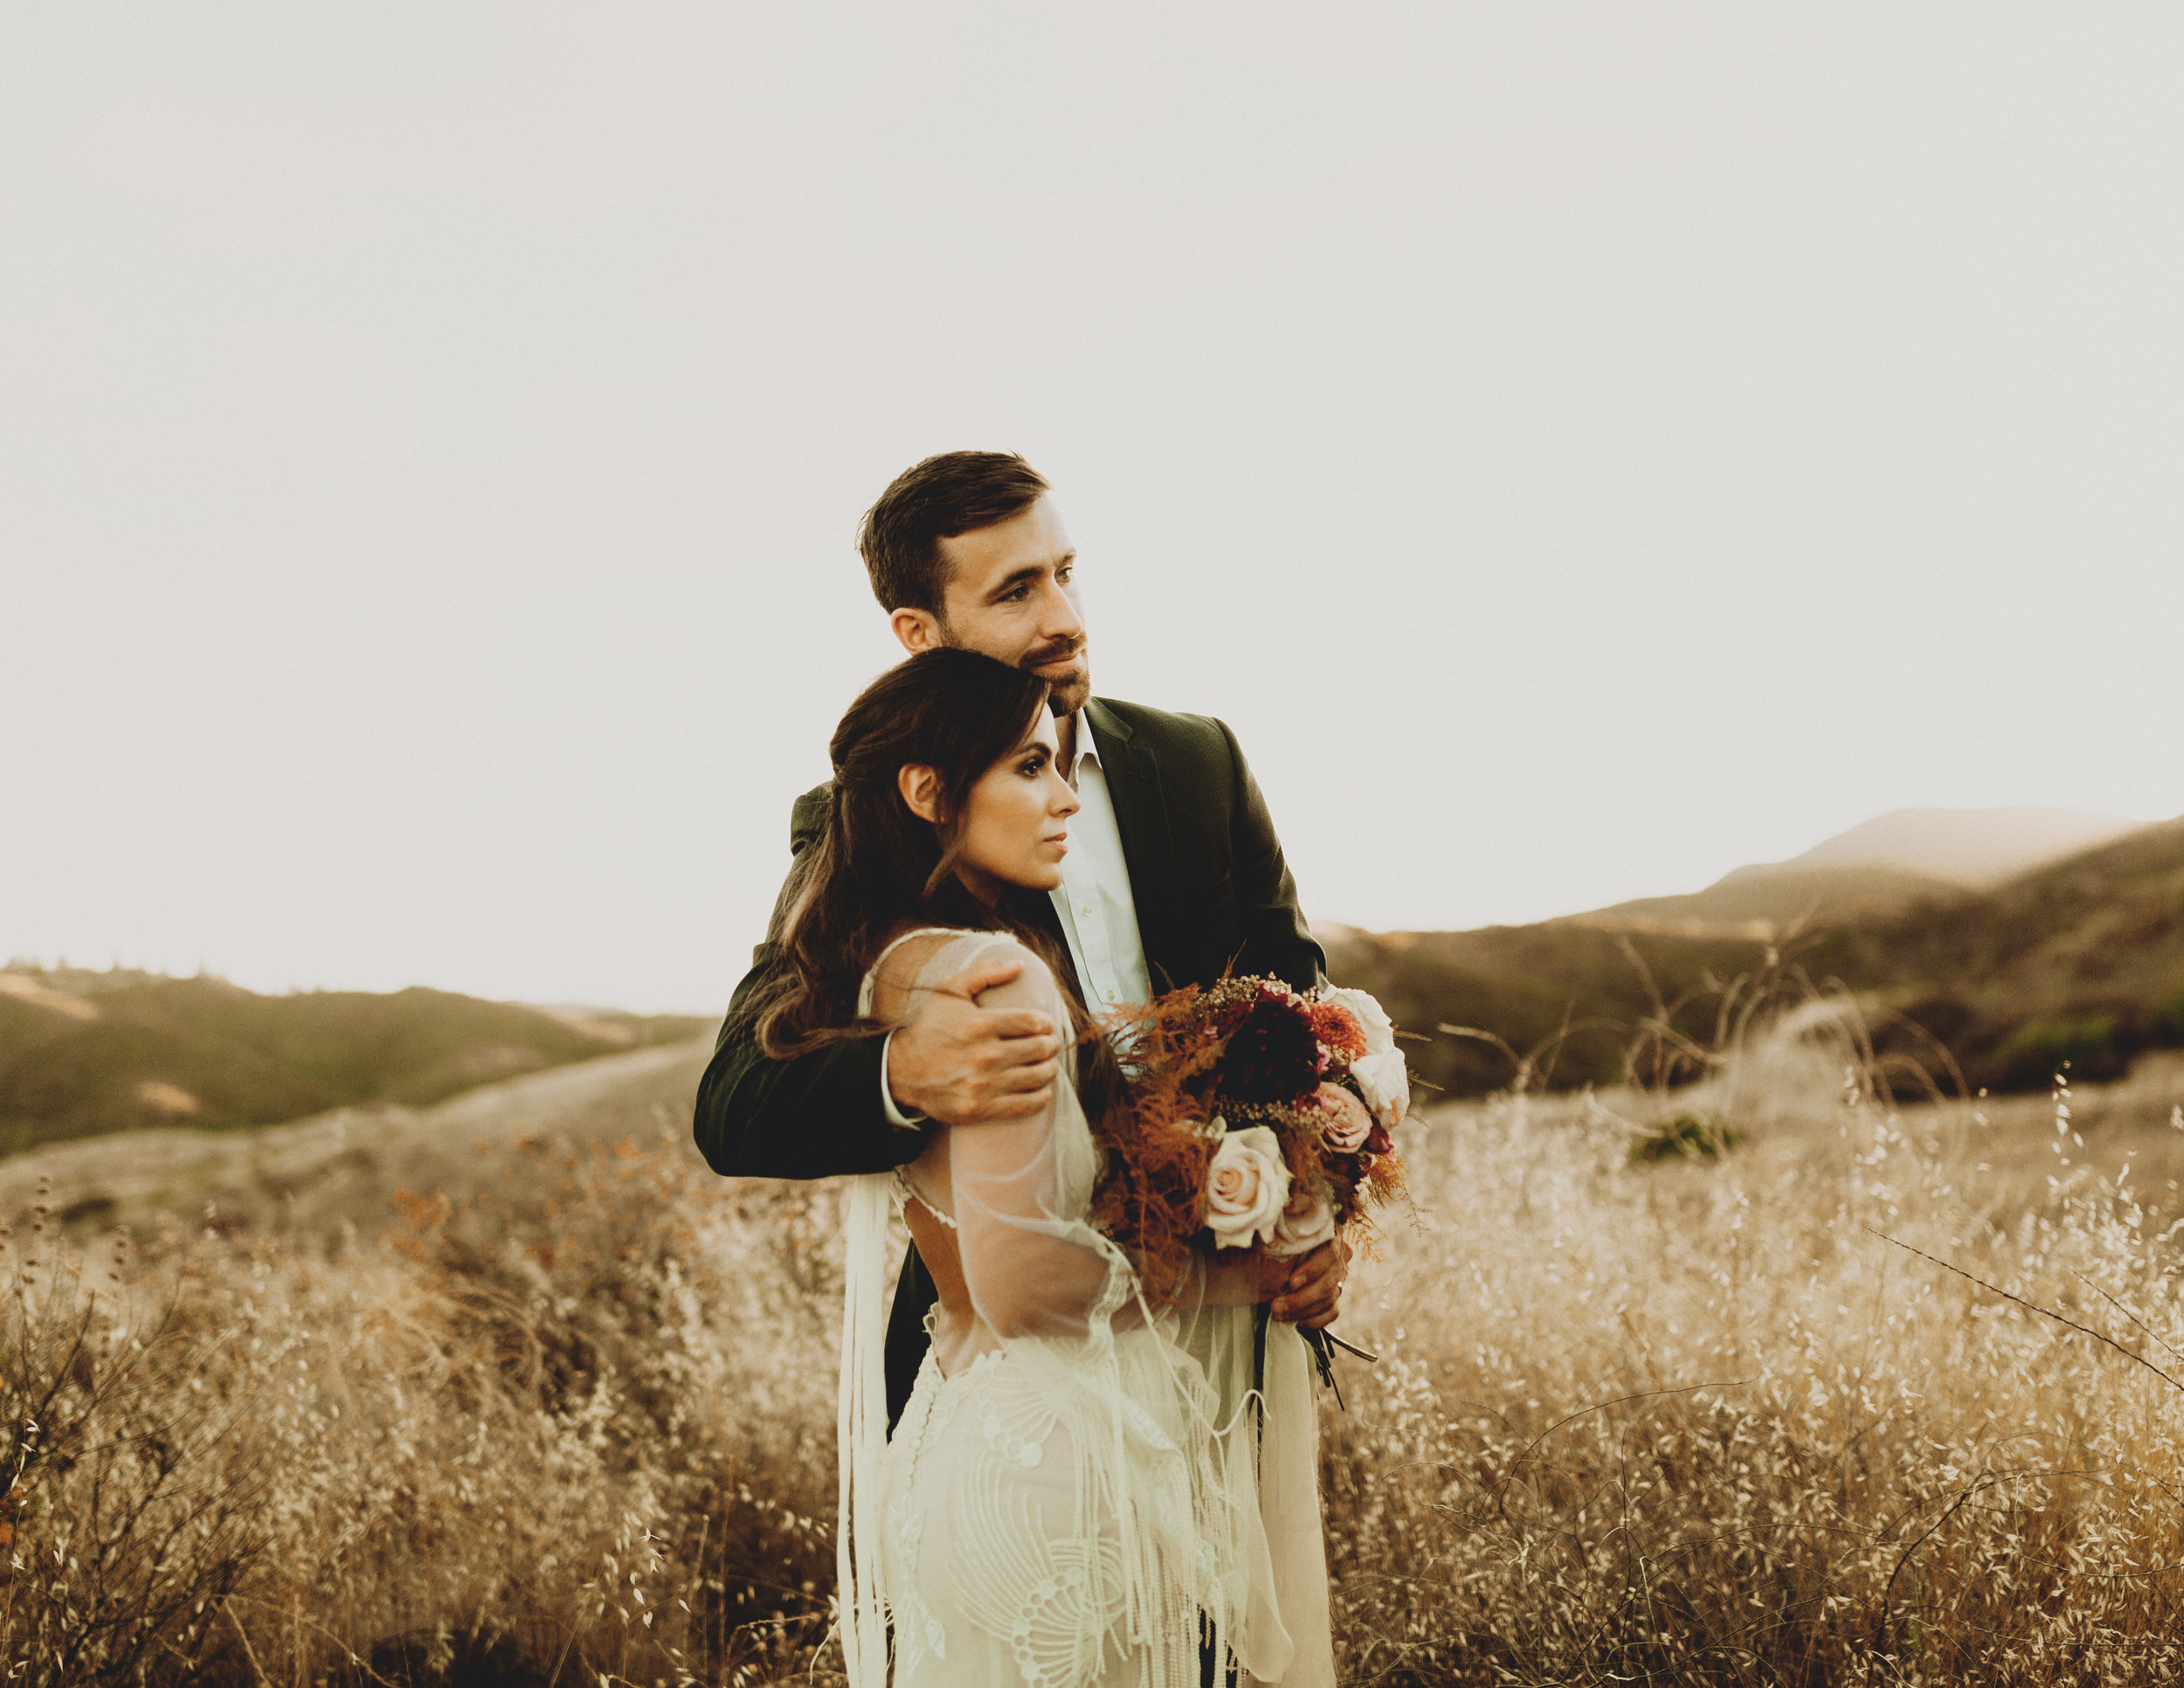 -California_Elopement_NellyCabanillas_Photography5092copy.jpg